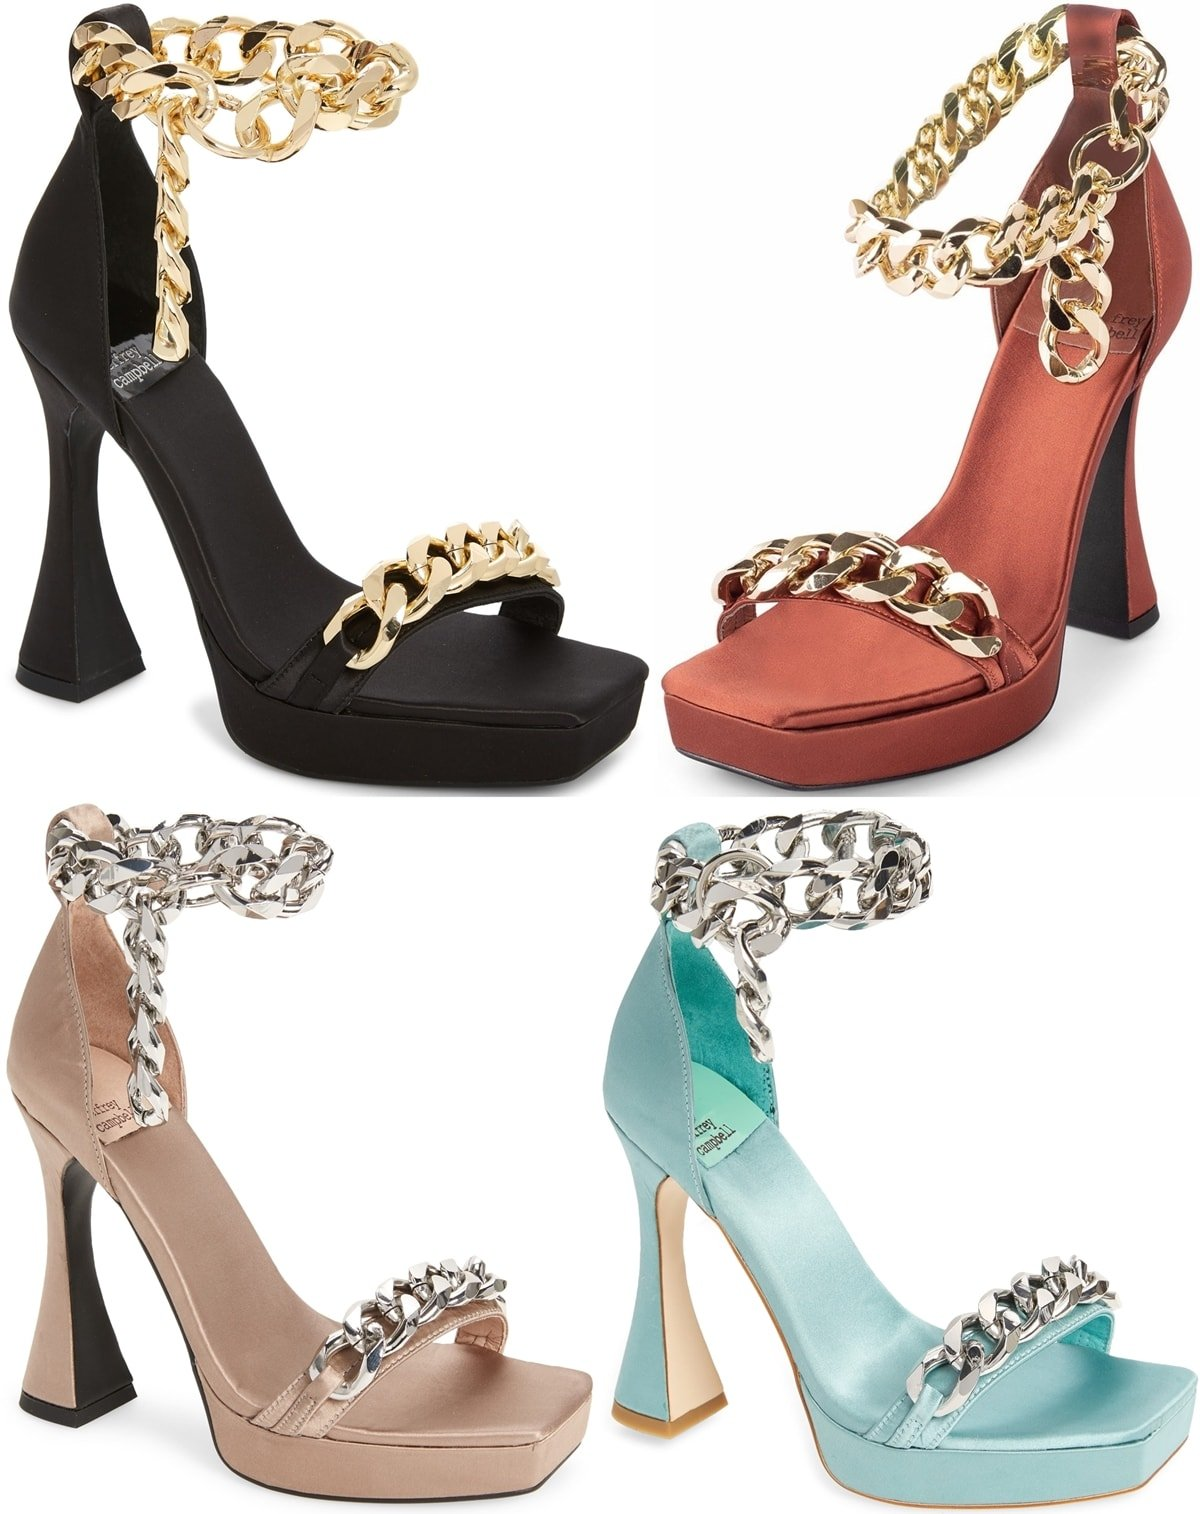 Gleaming chain links add modern glamour to a standout satin sandal set on a lofty flared heel